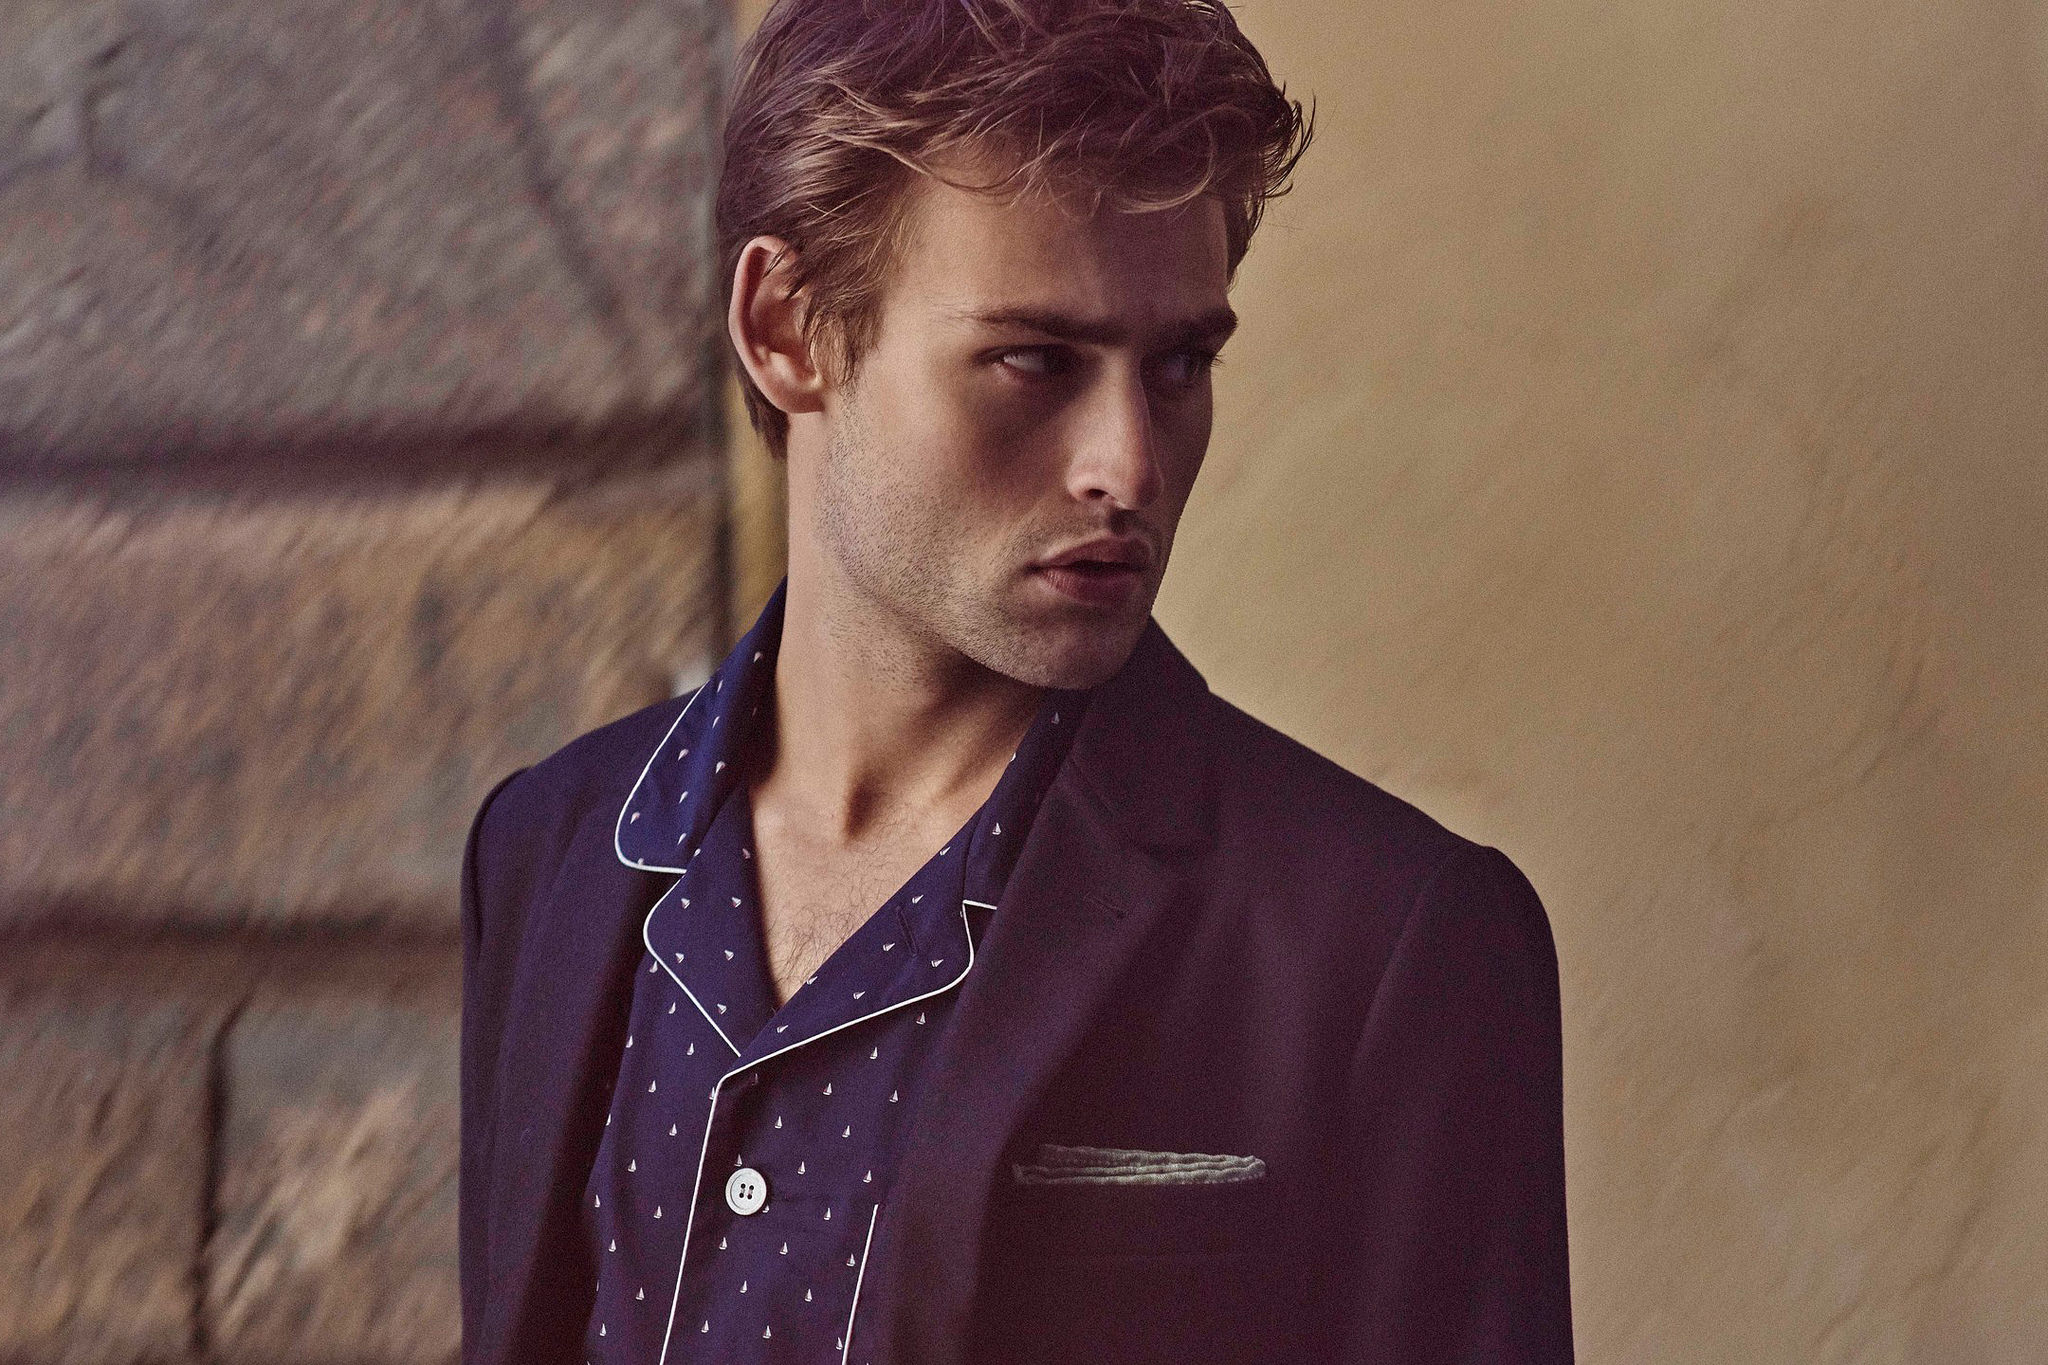 2048x1365 - Douglas Booth Wallpapers 9